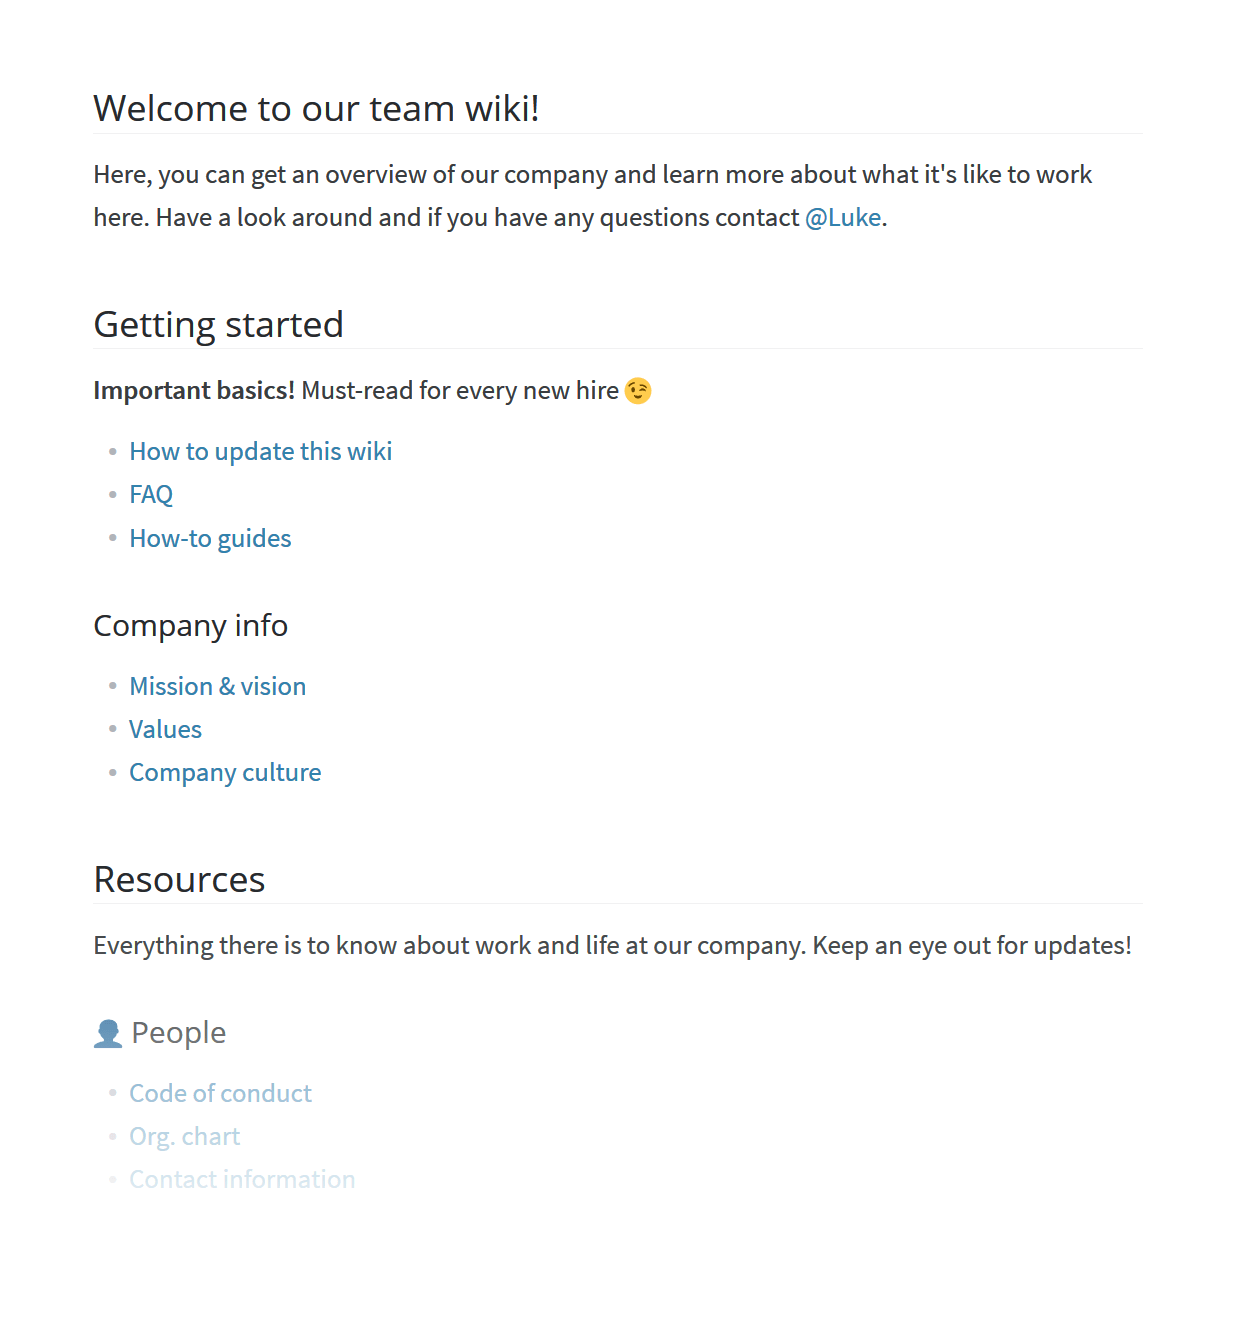 Corporate wiki welcome page